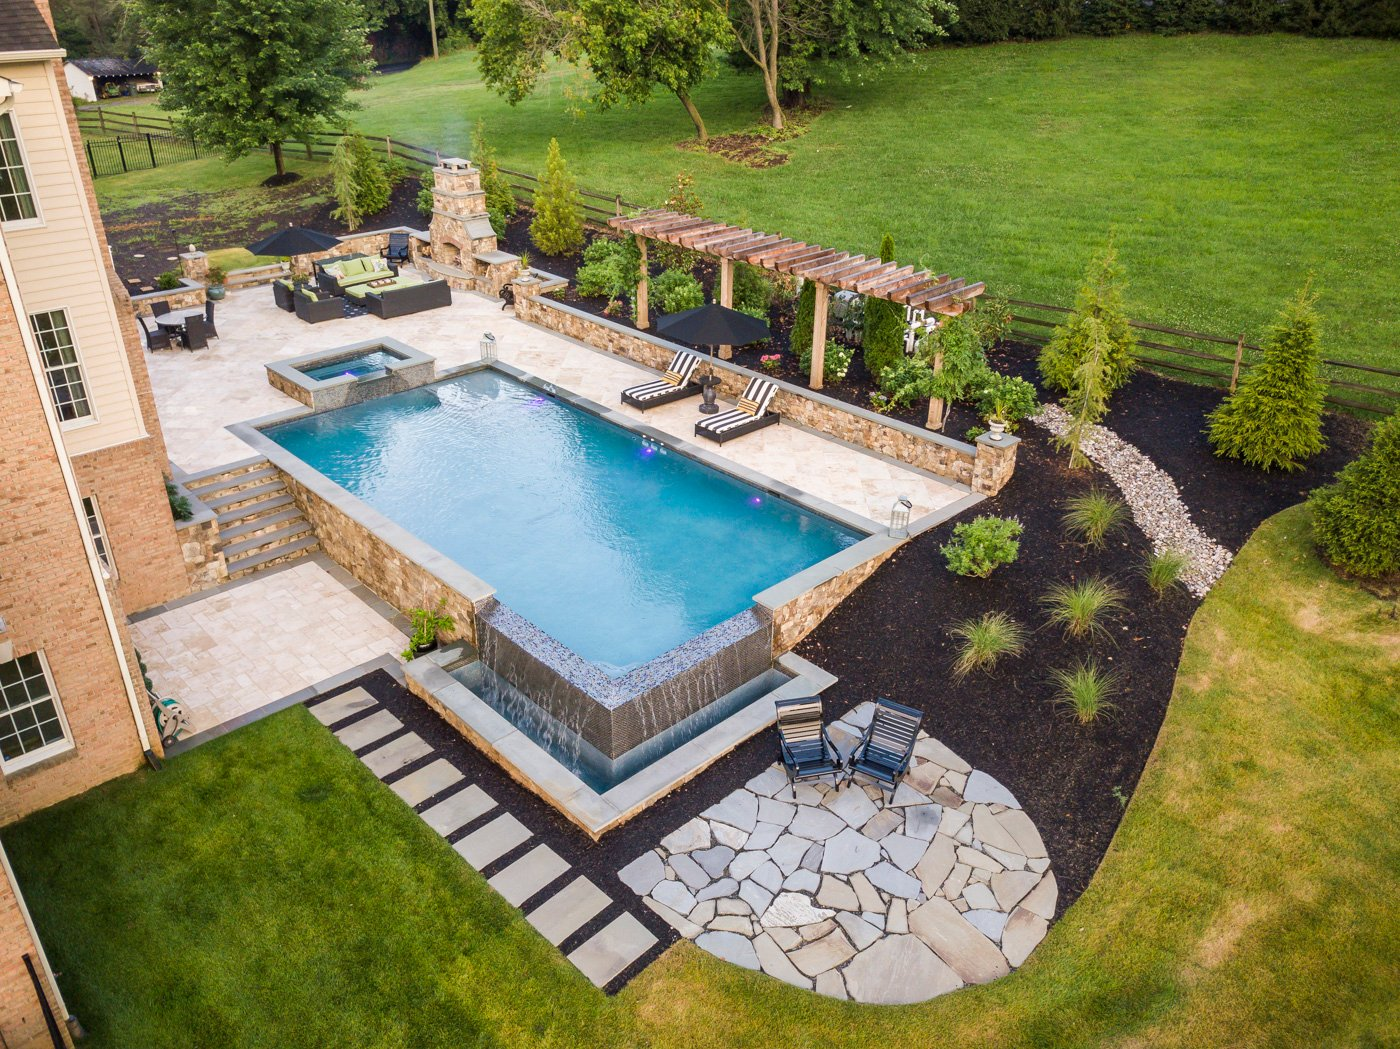 Pools & Lawns: How to Have the Best of Both Worlds at Your Northern VA Home